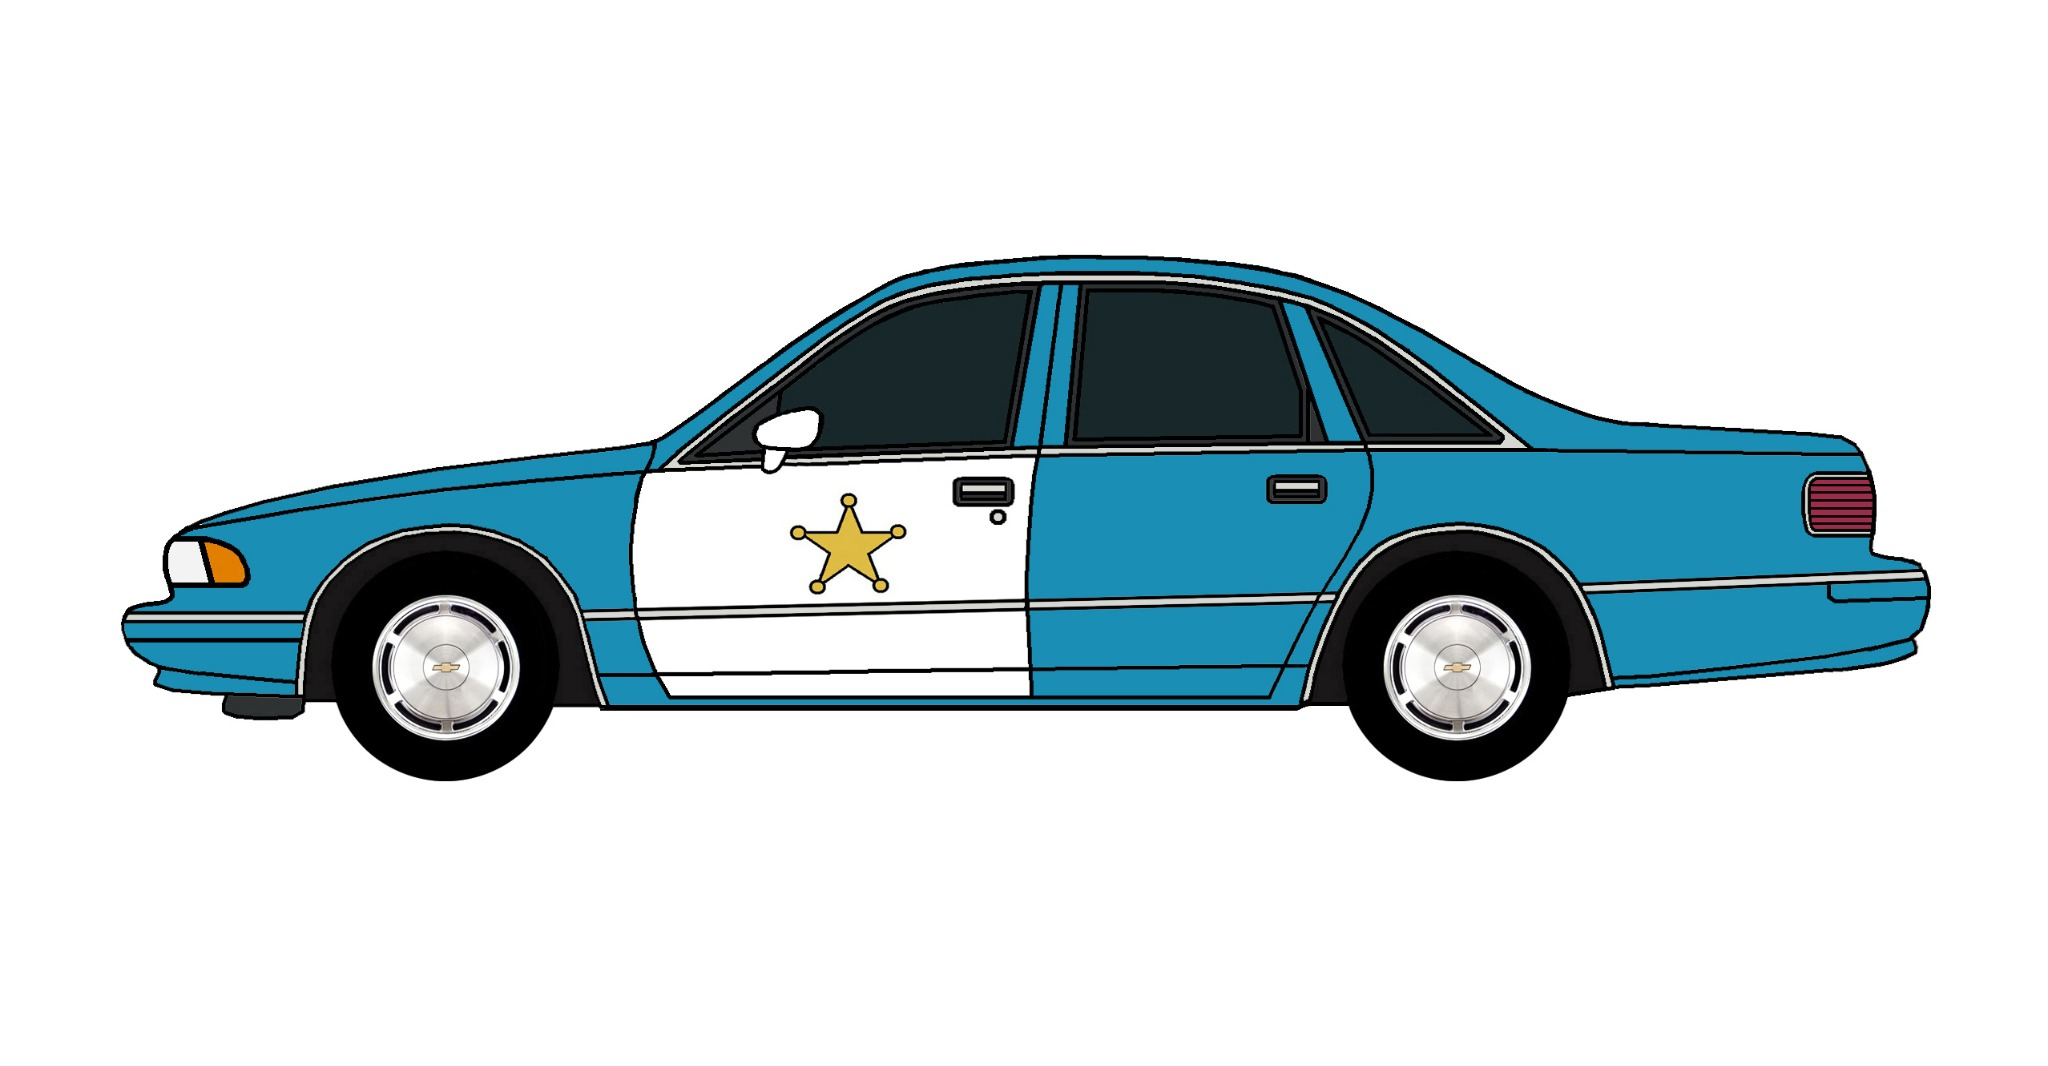 1994 Chevy Caprice Police Car SEA BLUE